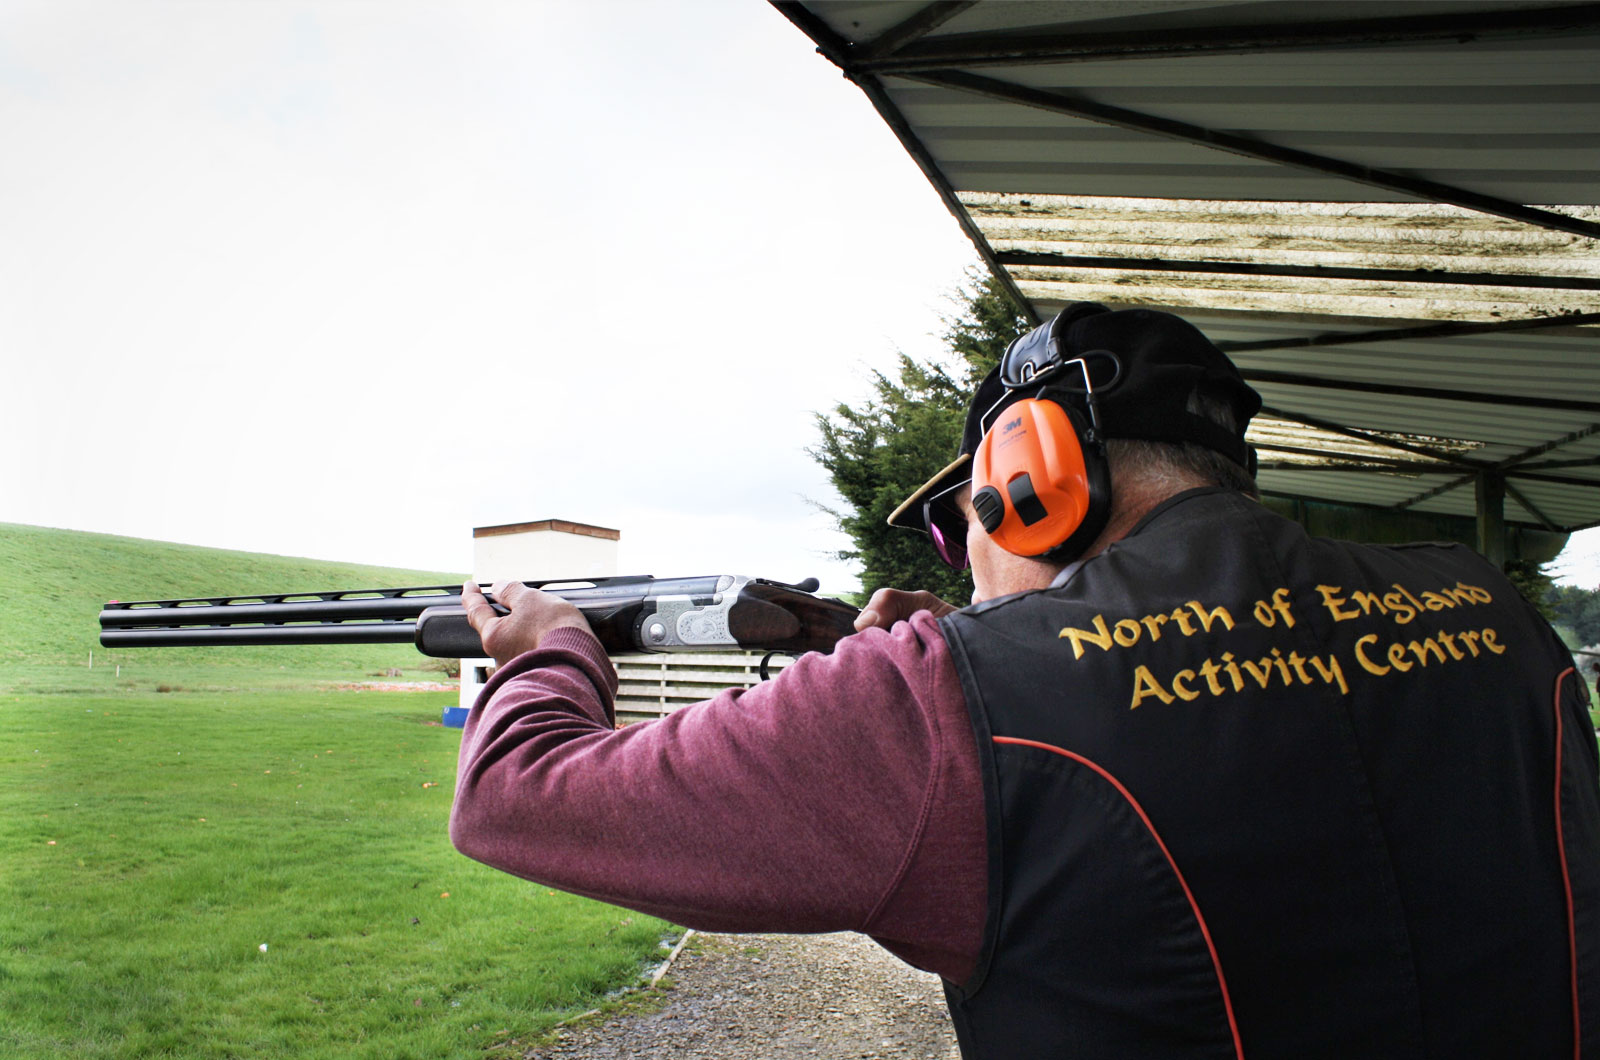 Clay Pigeon Shooting at North of England Activity Centre